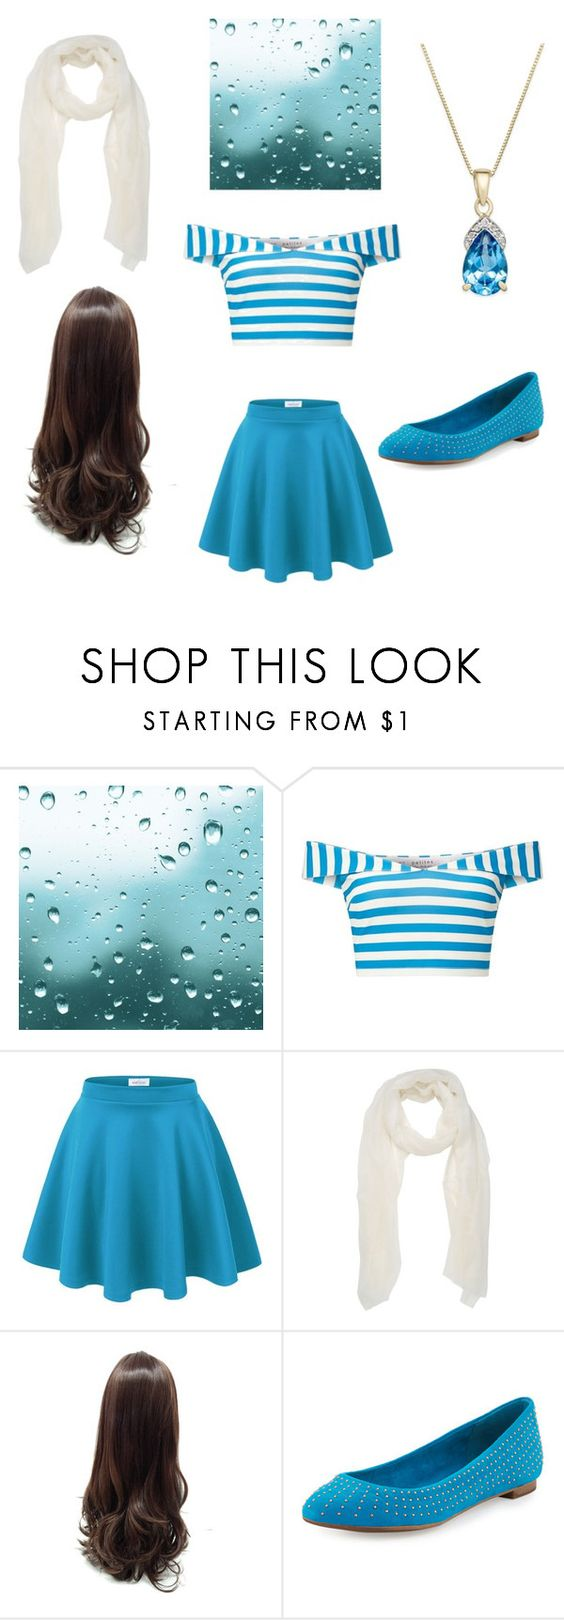 """Sailor Girl"" by ejacox ❤ liked on Polyvore featuring Miss Selfridge and Splendid"